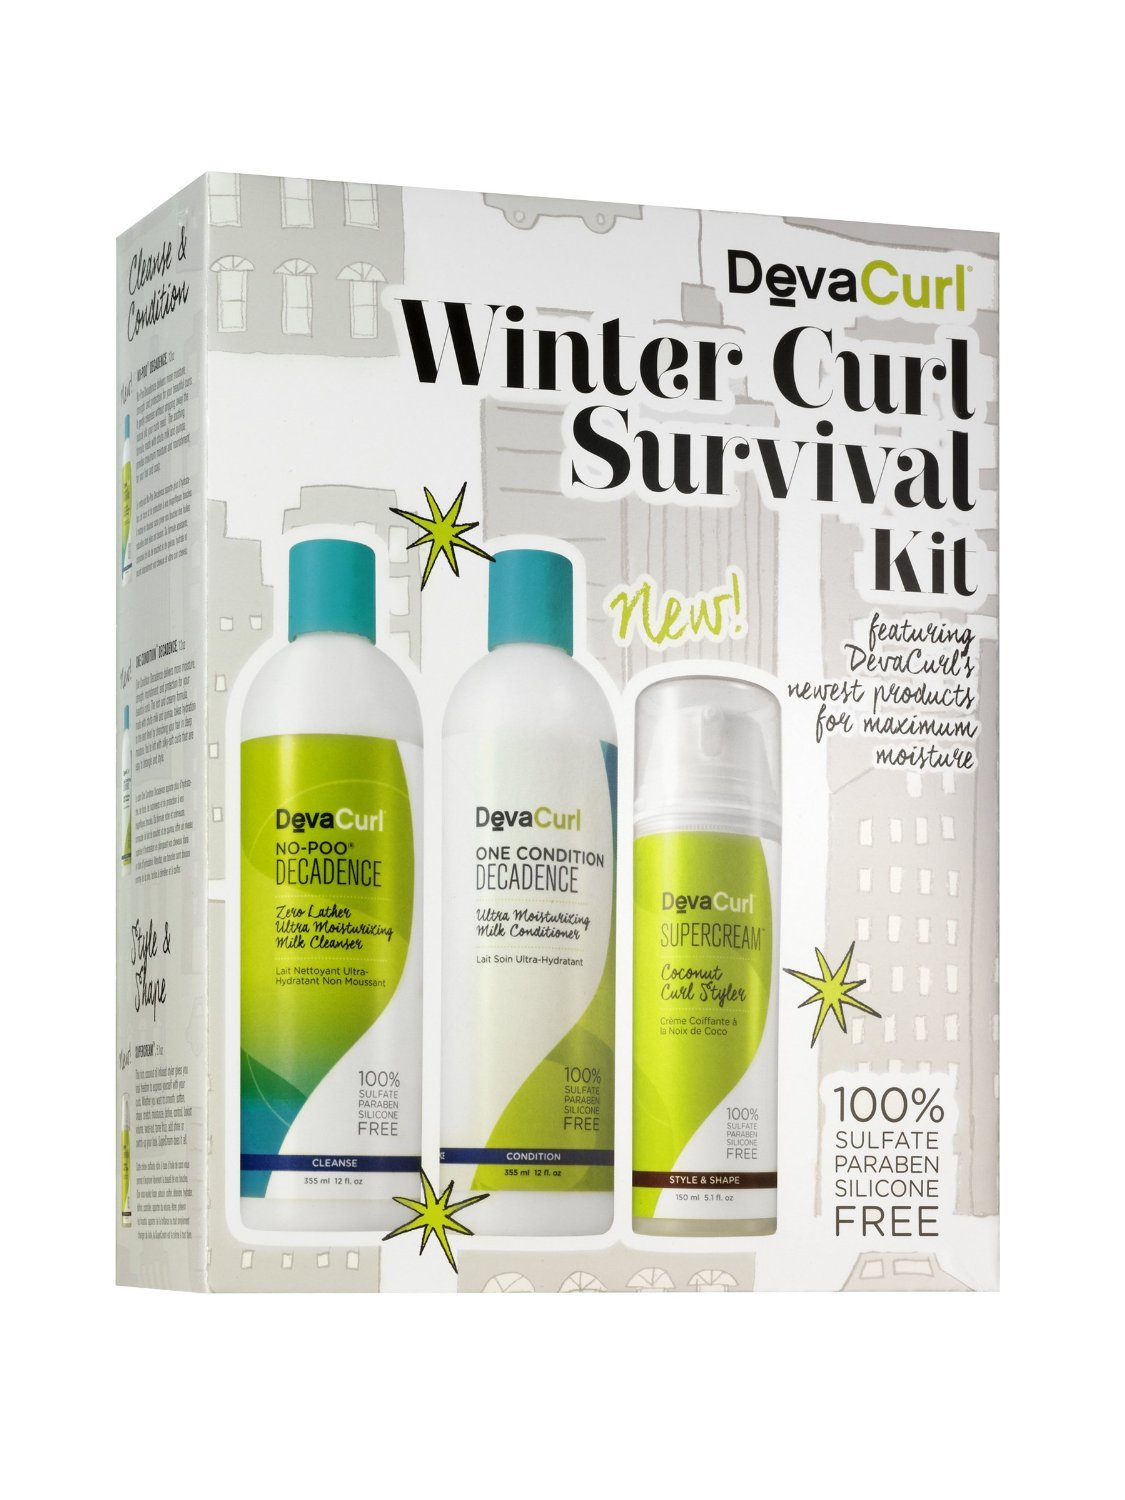 DevaCurl Winter Curl Survival Kit